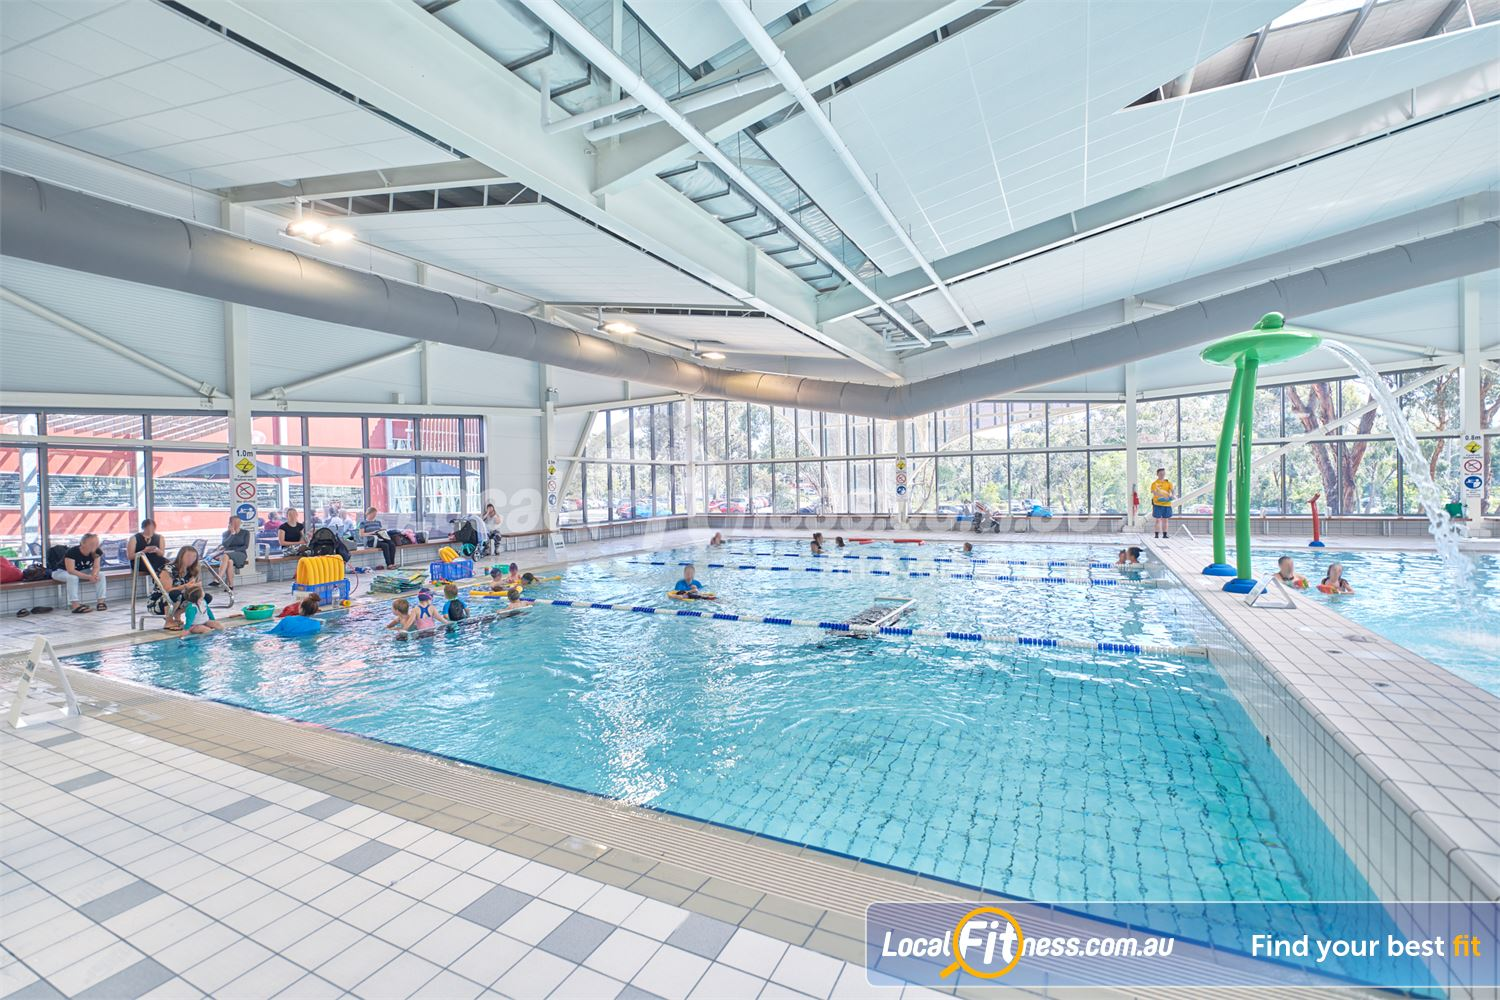 Eltham Leisure Centre Near Templestowe Our swim school programs are now run in our dedicated Eltham learn to swim pool.